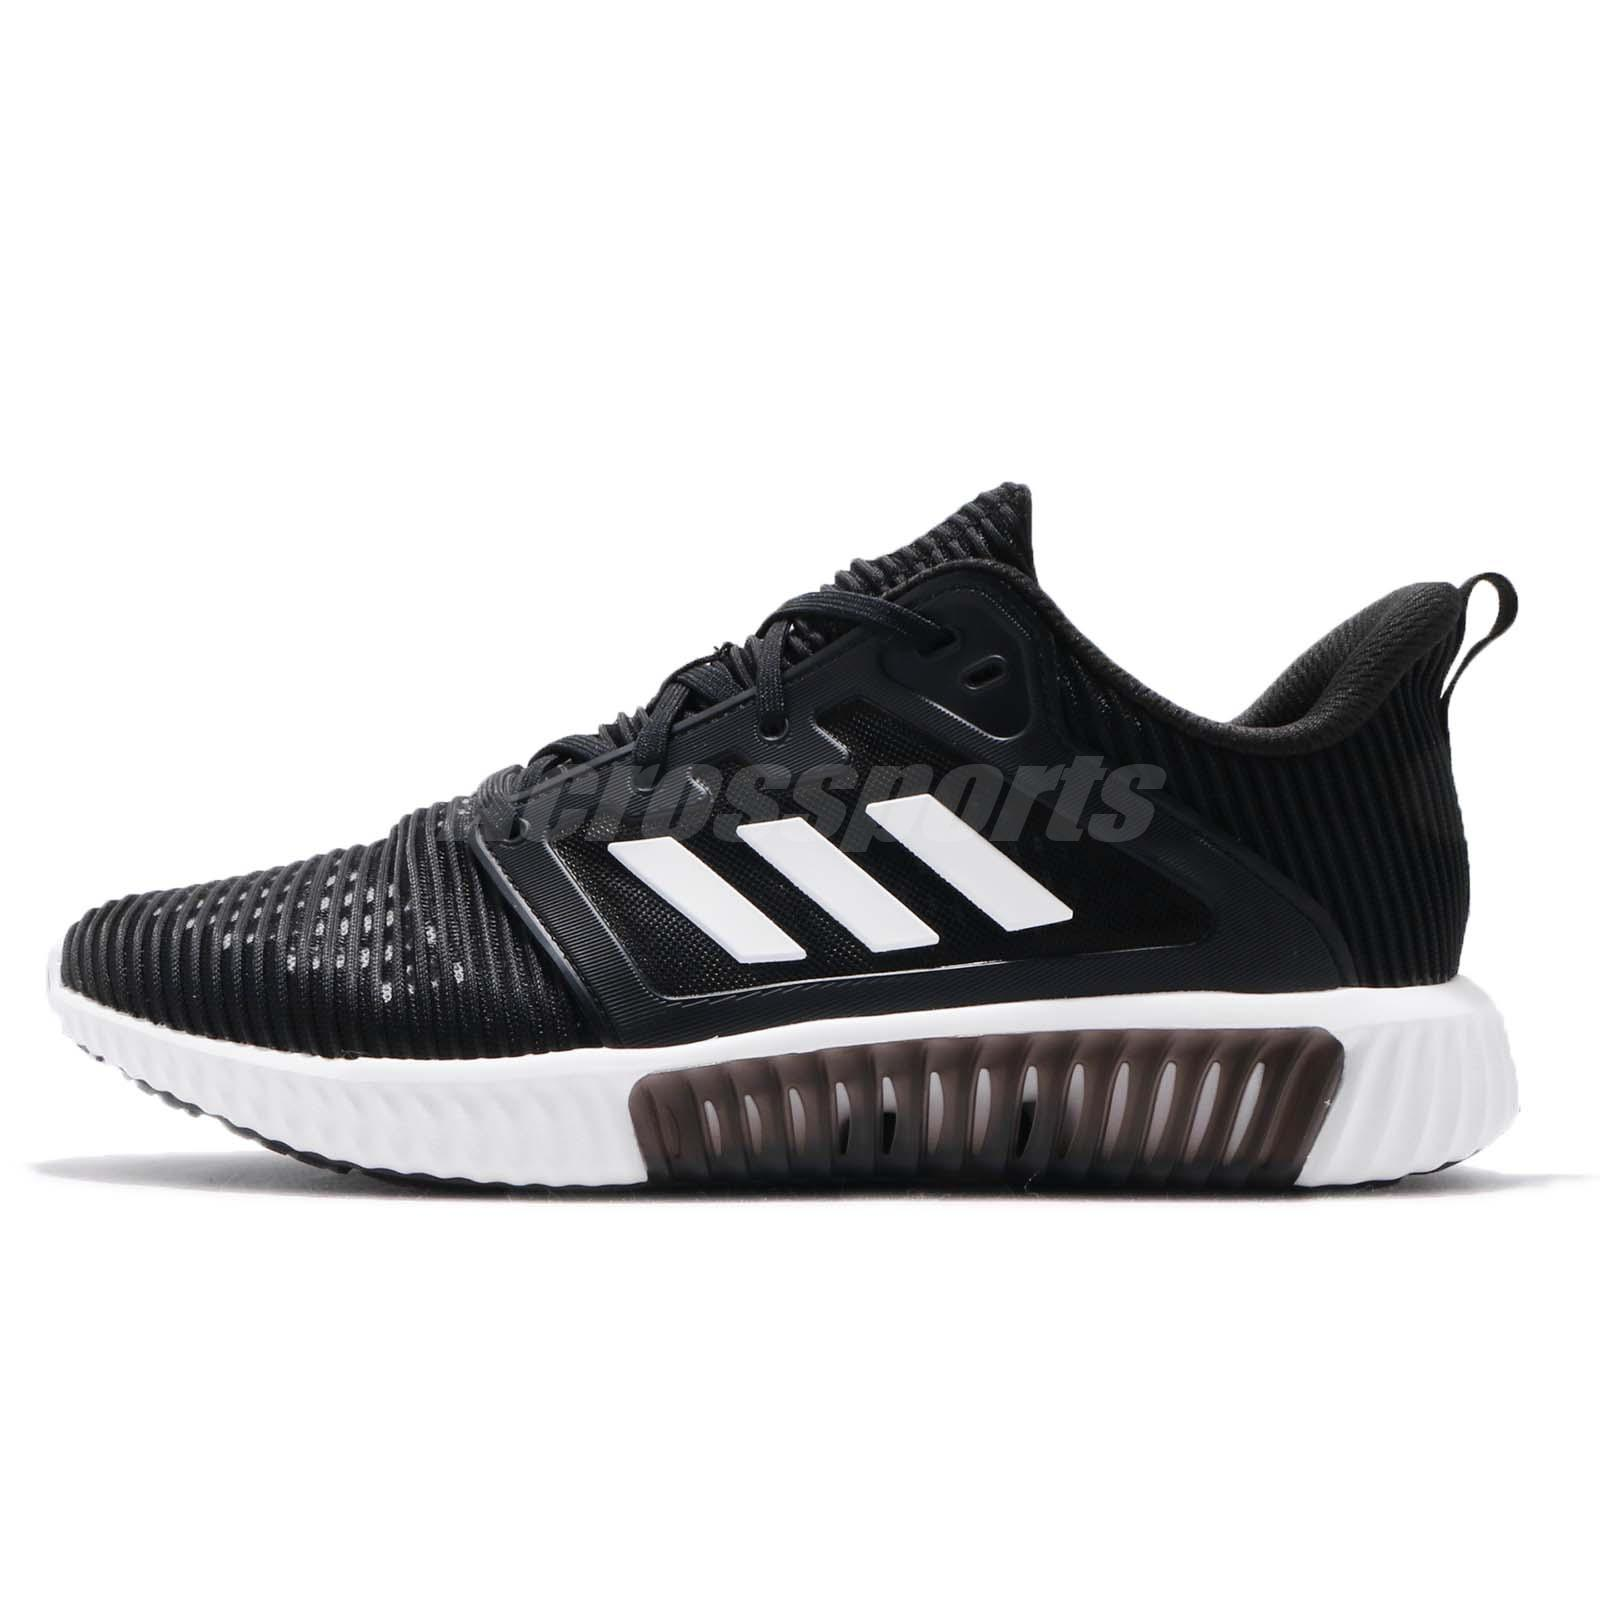 competitive price 7c458 3ef45 adidas Climacool Vent M Black Grey White Men Running Shoes Sneakers CG3916